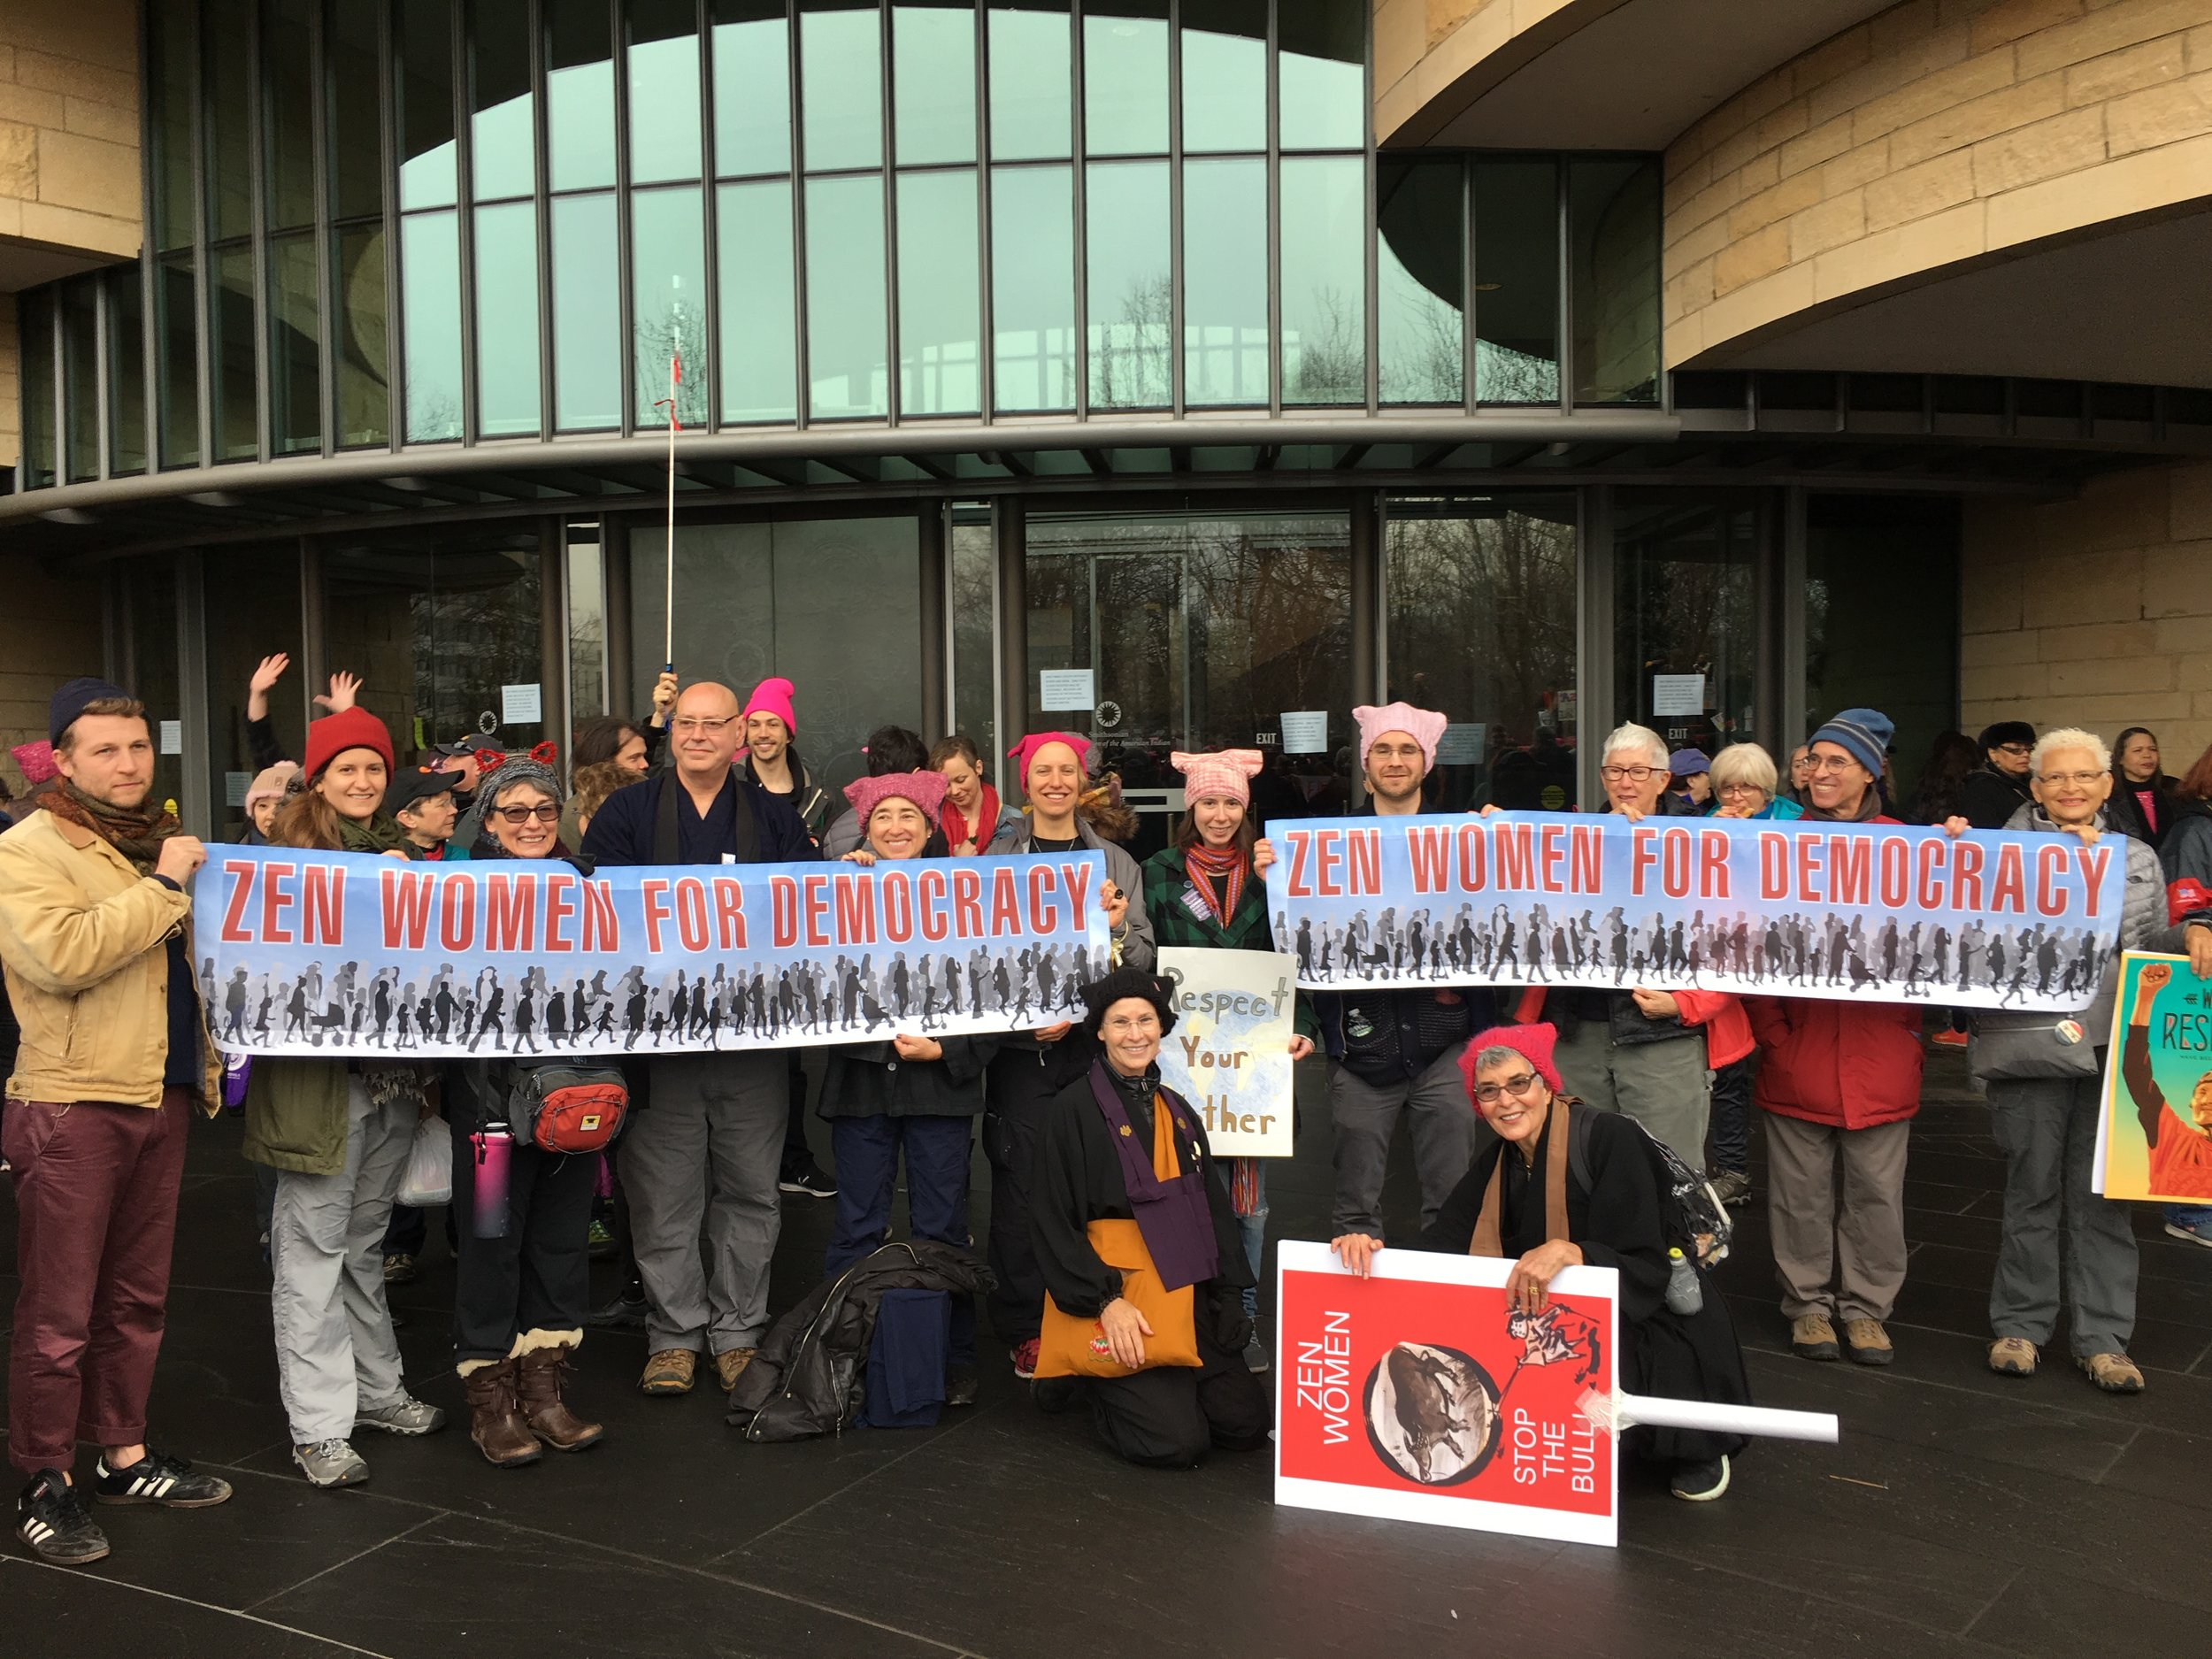 Audrey Charlton on the far right holds the banner with some of the many Zen practitioners who joined the march